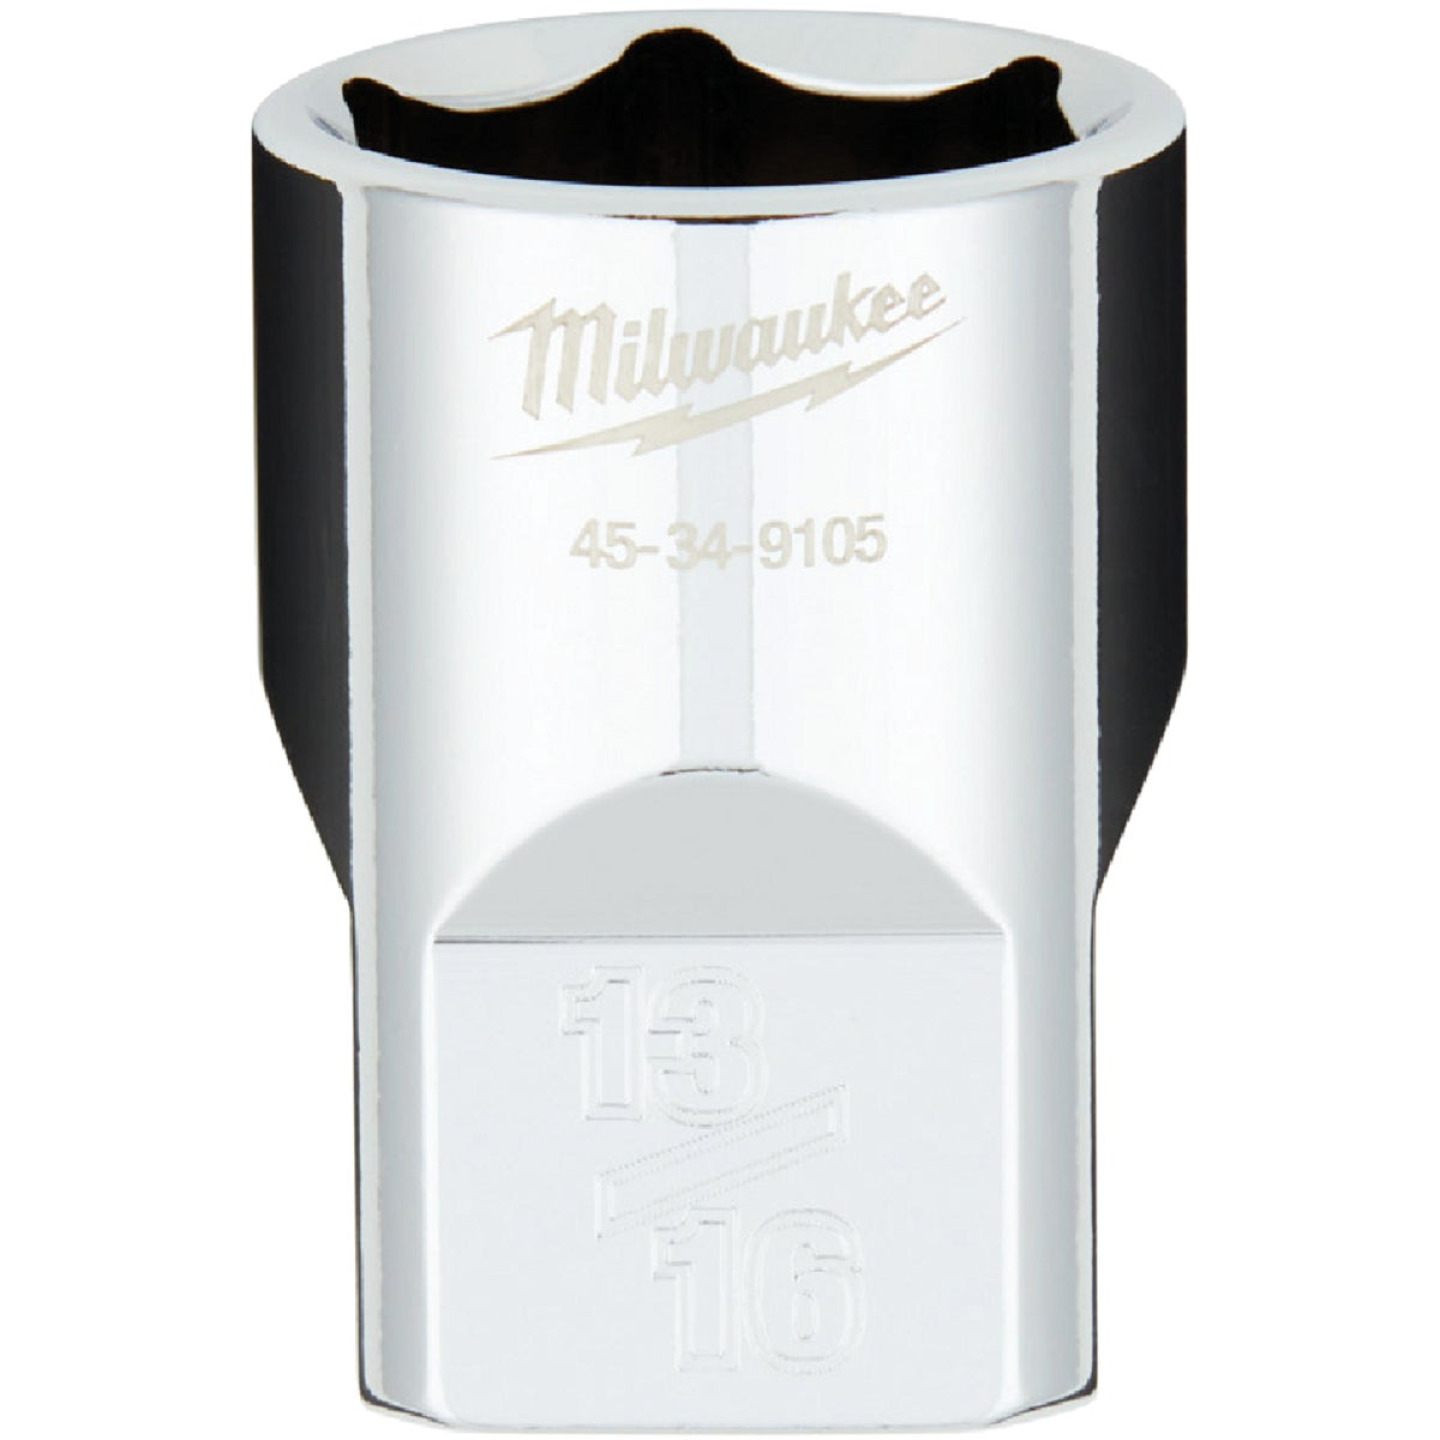 Milwaukee 1/2 In. Drive 13/16 In. 6-Point Shallow Standard Socket with FOUR FLAT Sides Image 1